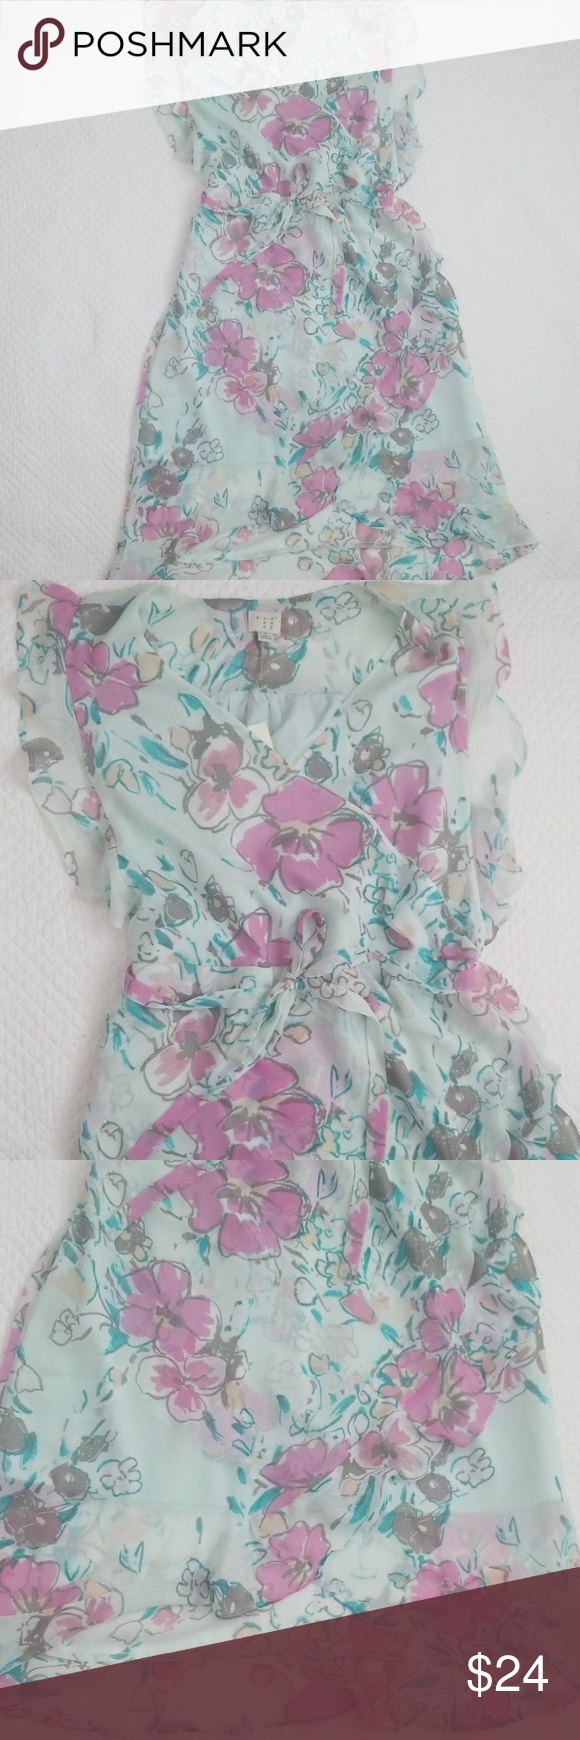 Nwt Floral Dress Target A New Day Mint Green Sz L Target Dresses Mint Green Floral Print Dress [ 1740 x 580 Pixel ]